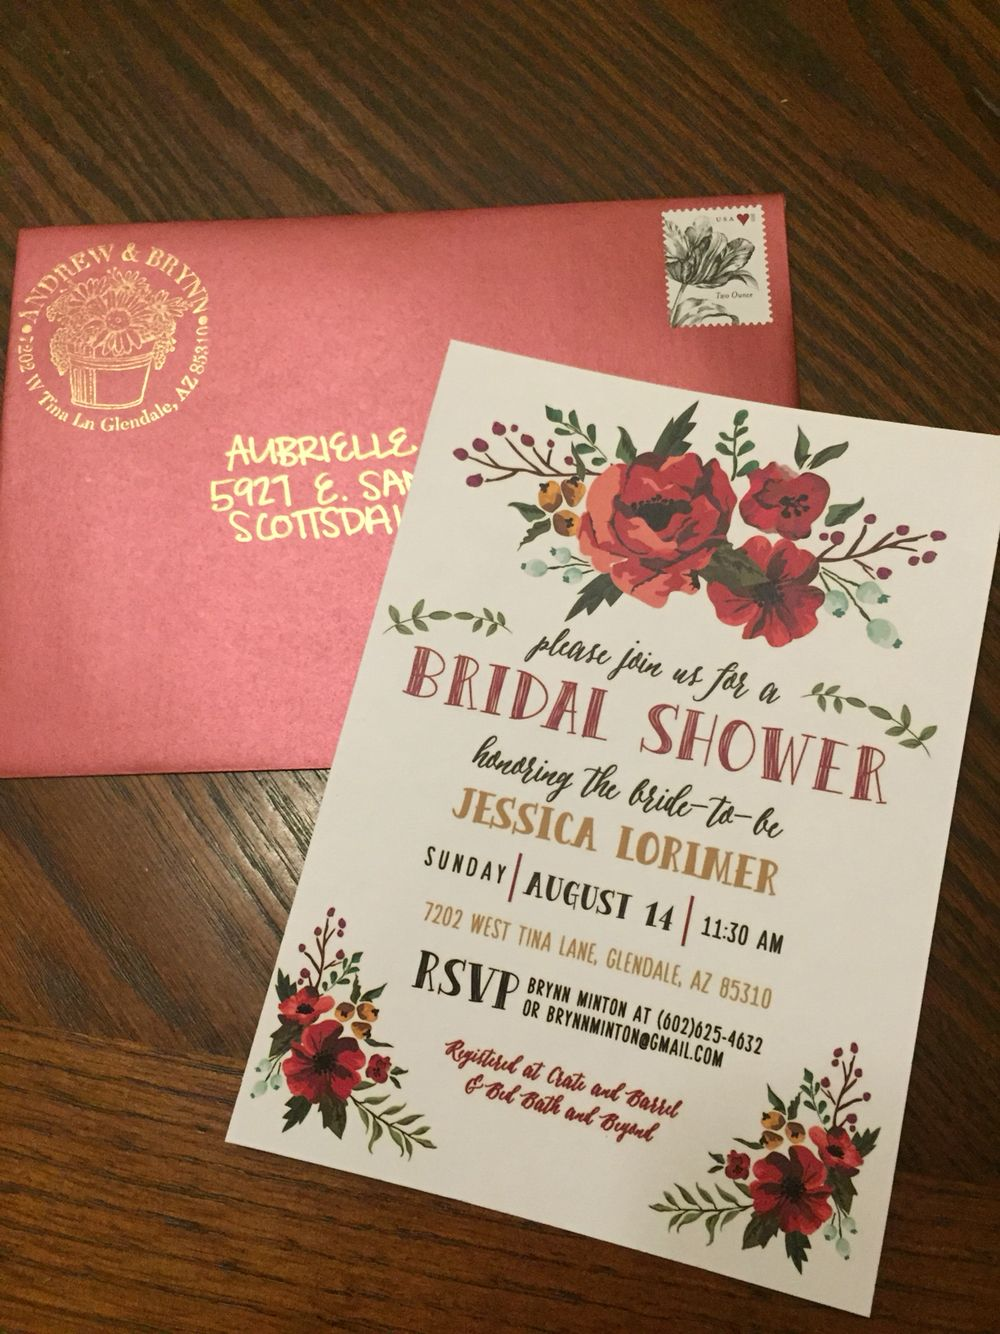 bridal shower invitation quote ideas%0A Bridal shower invitations Wine  burgundy  maroon  and gold https   www